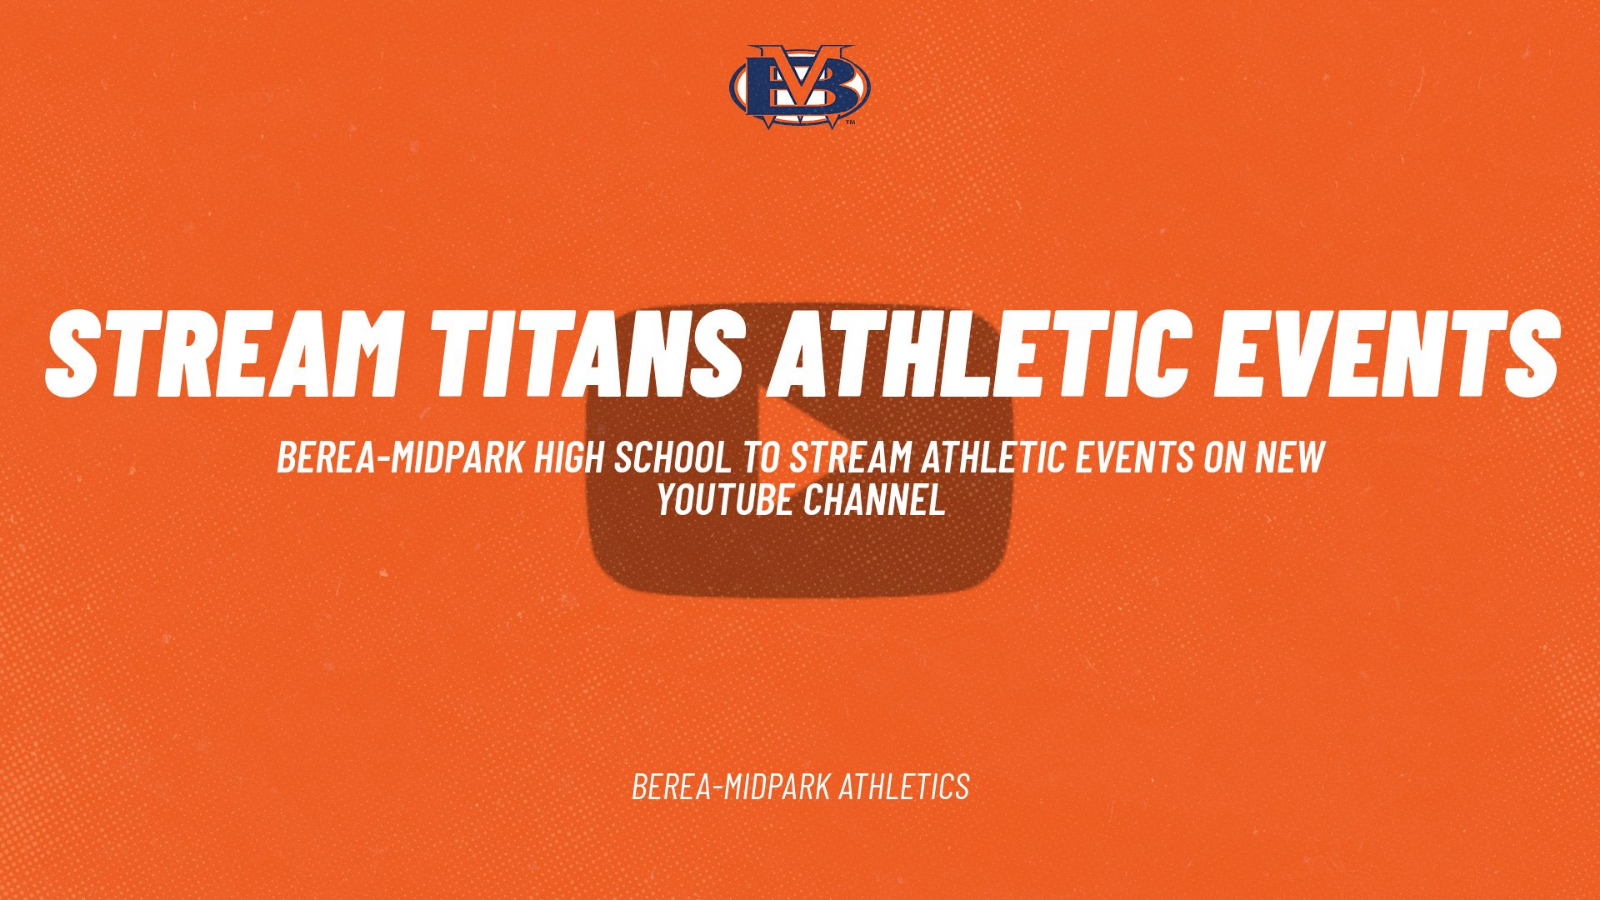 Berea-Midpark Athletics to Stream Athletic Contests on YouTube